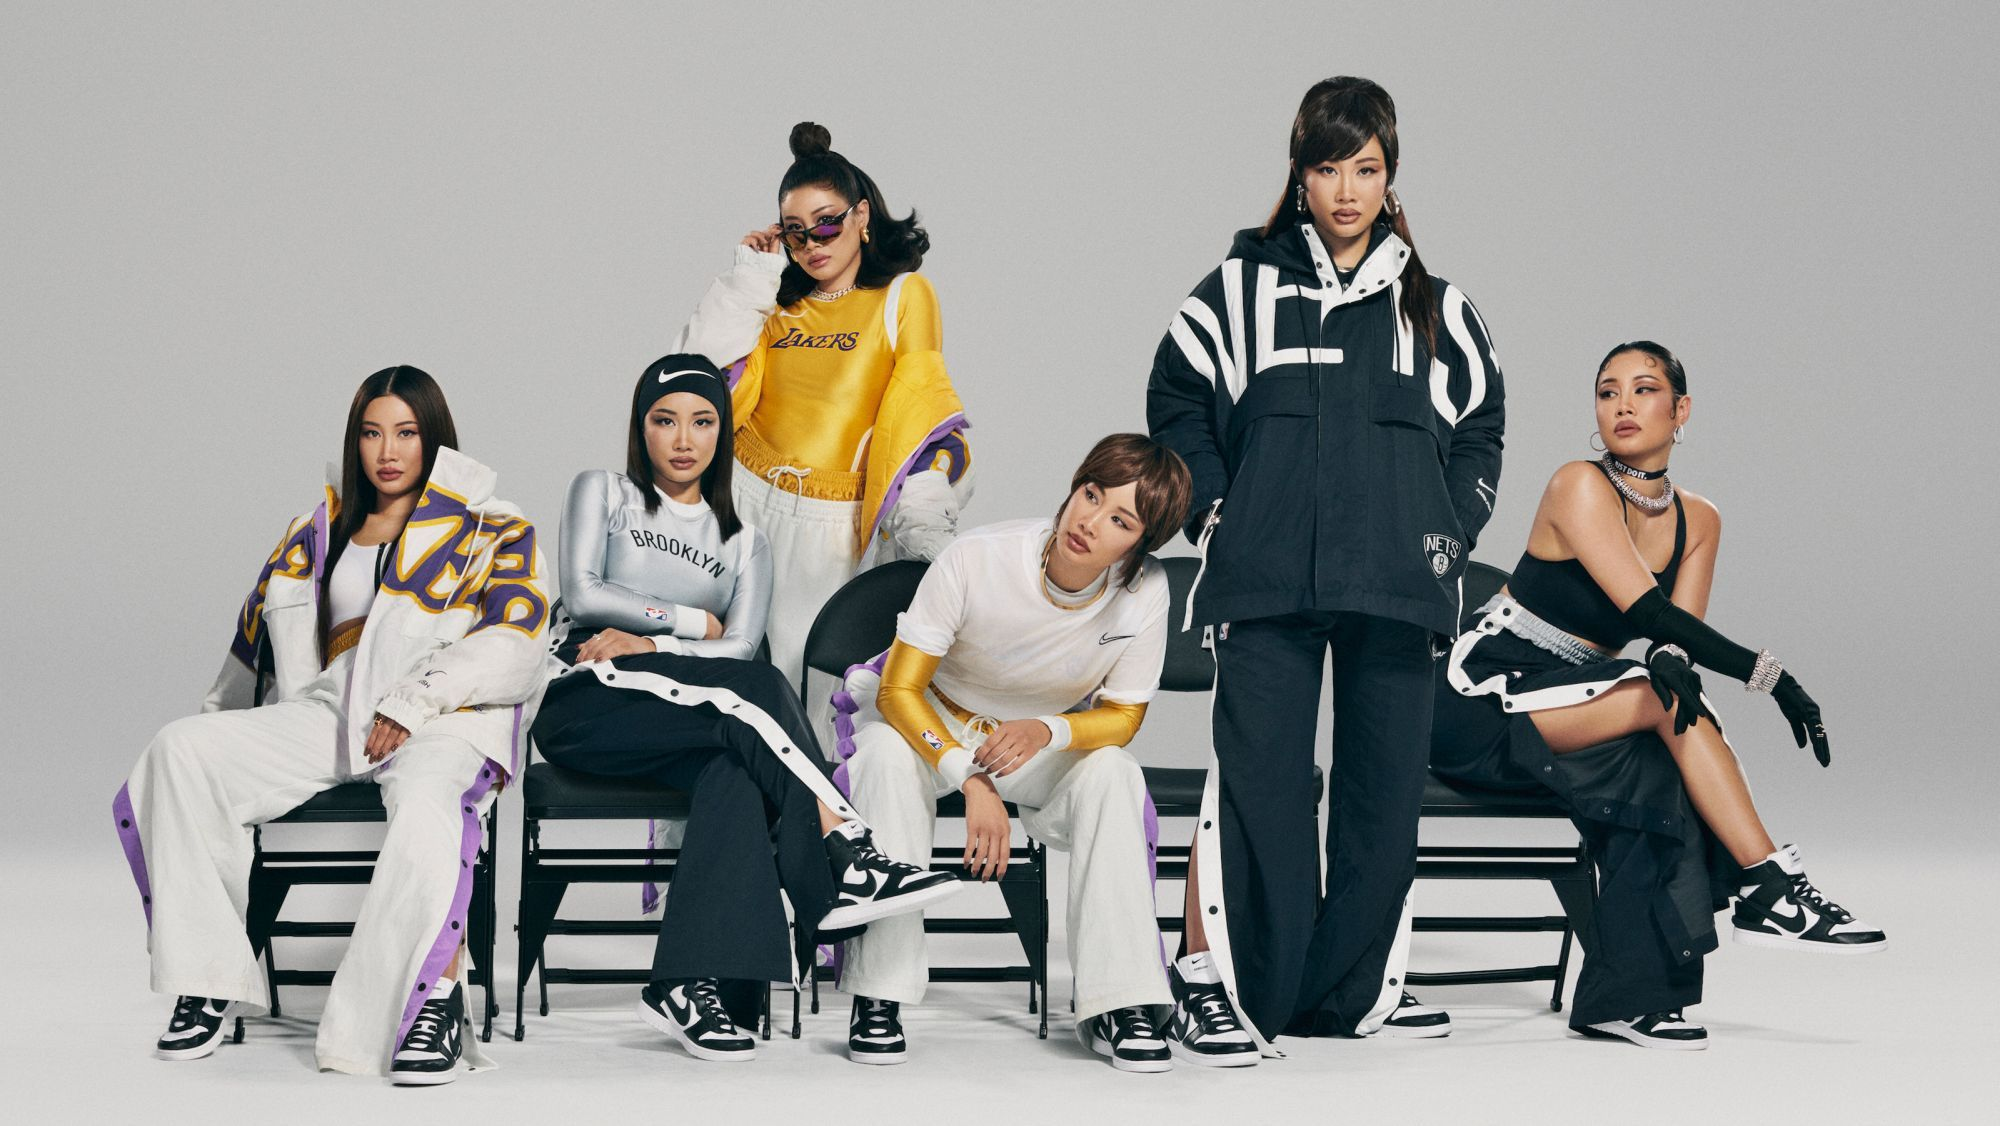 Yoon Ahn, Nike And The NBA Keep The Courtside Style Going With A Special Fashion Collaboration